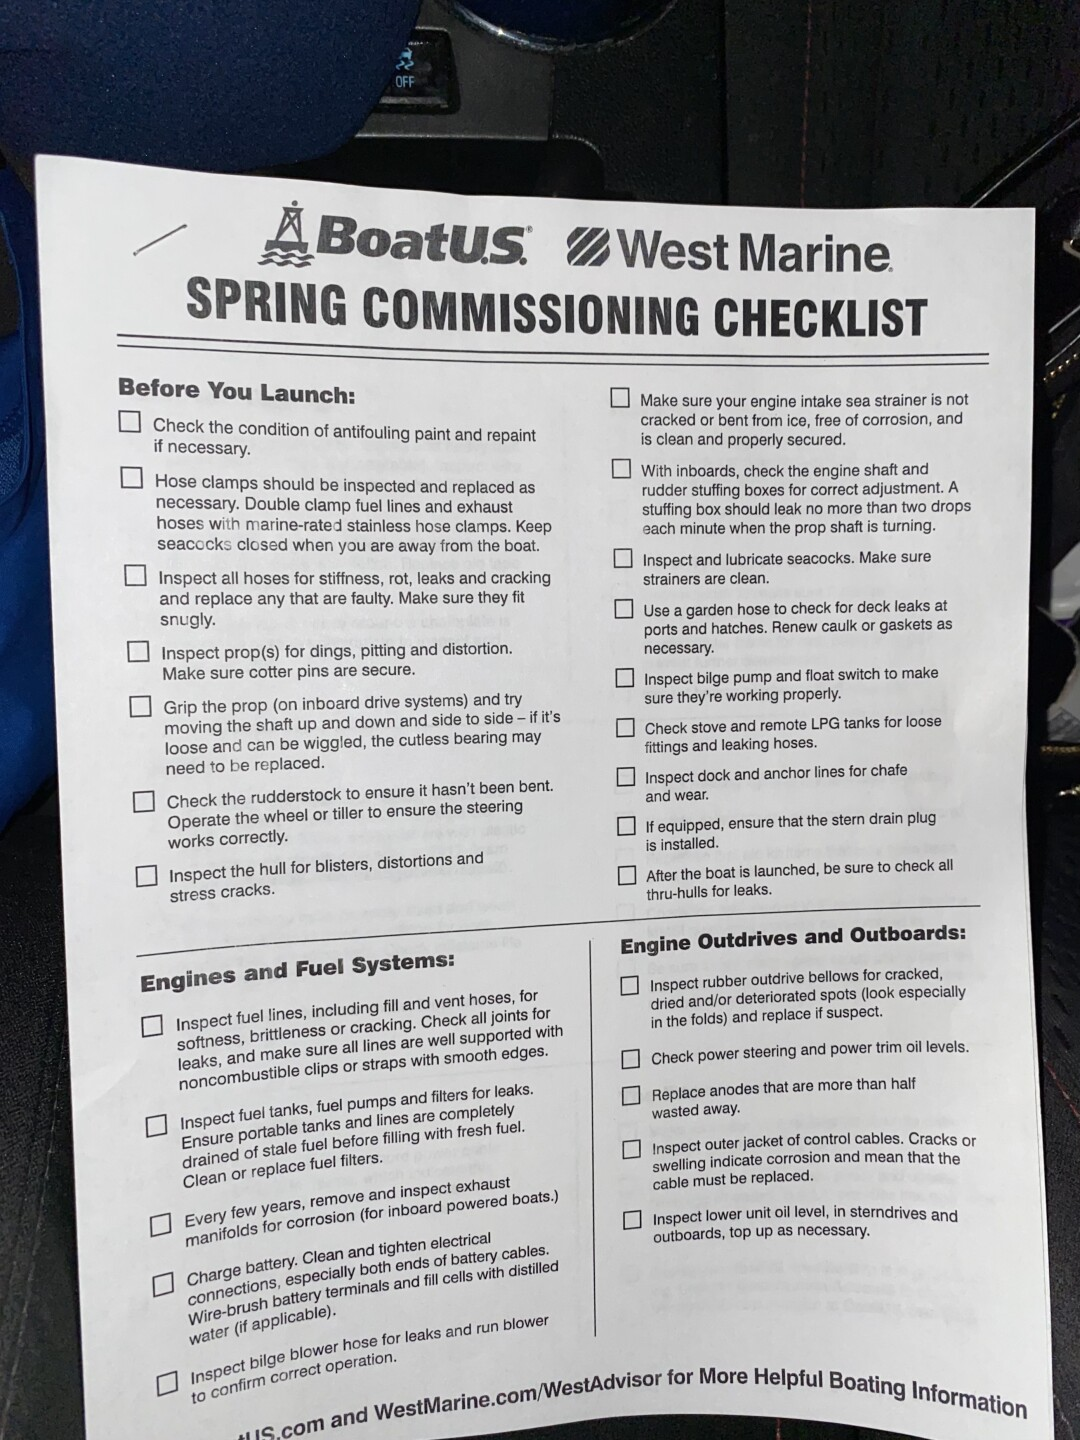 West Marine has a spring boating checklist to prepare you for the season